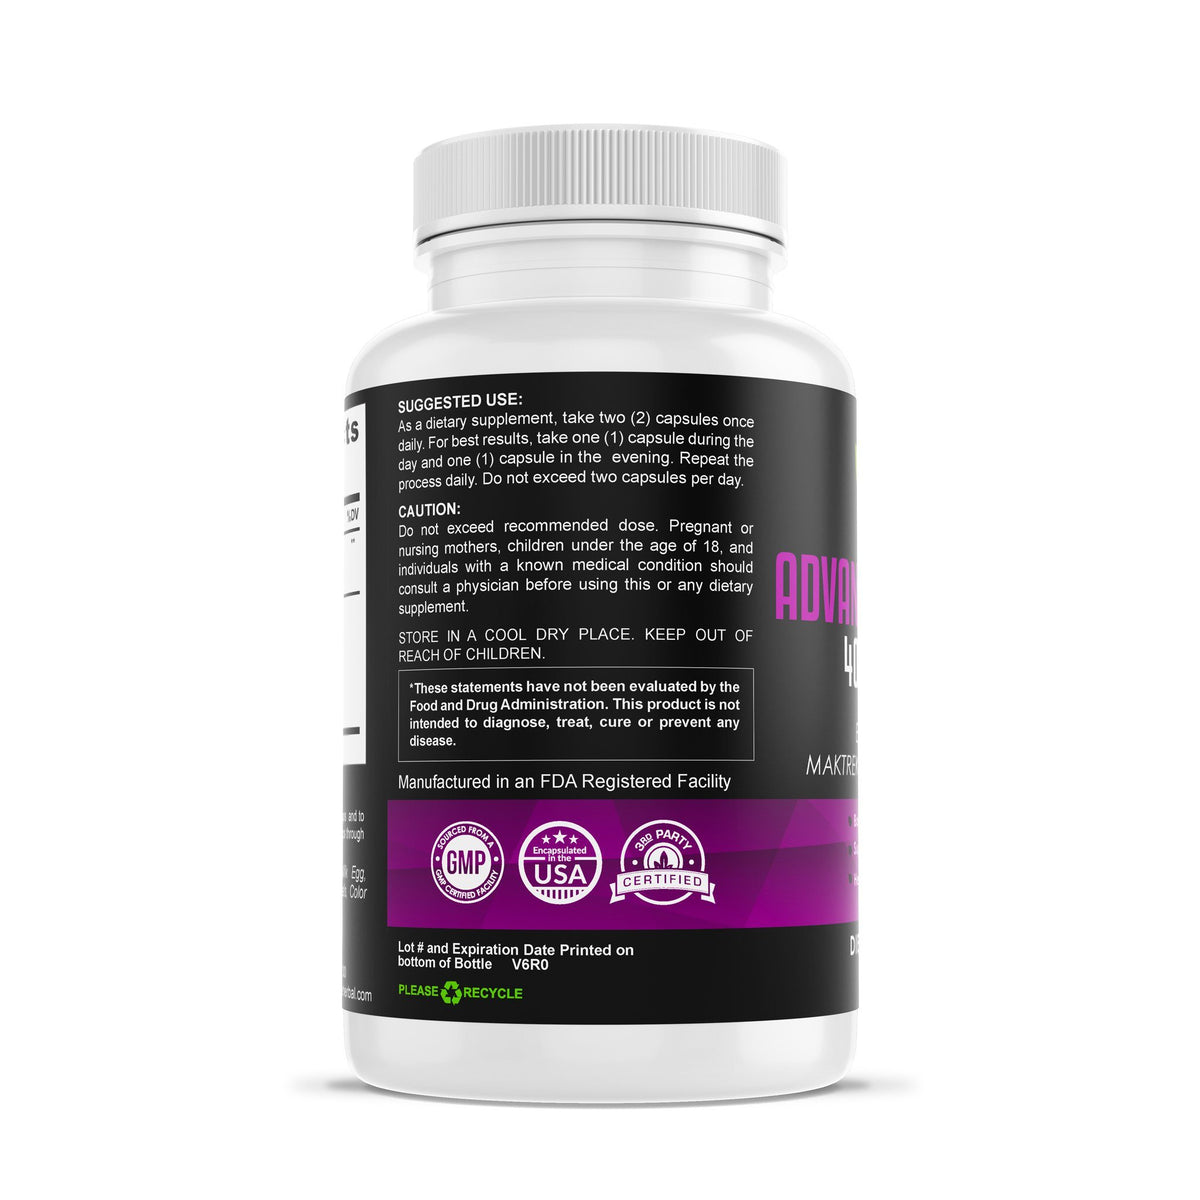 Advanced ProBiotic 40 Billion CFU Herbal Supplements Be Herbal®